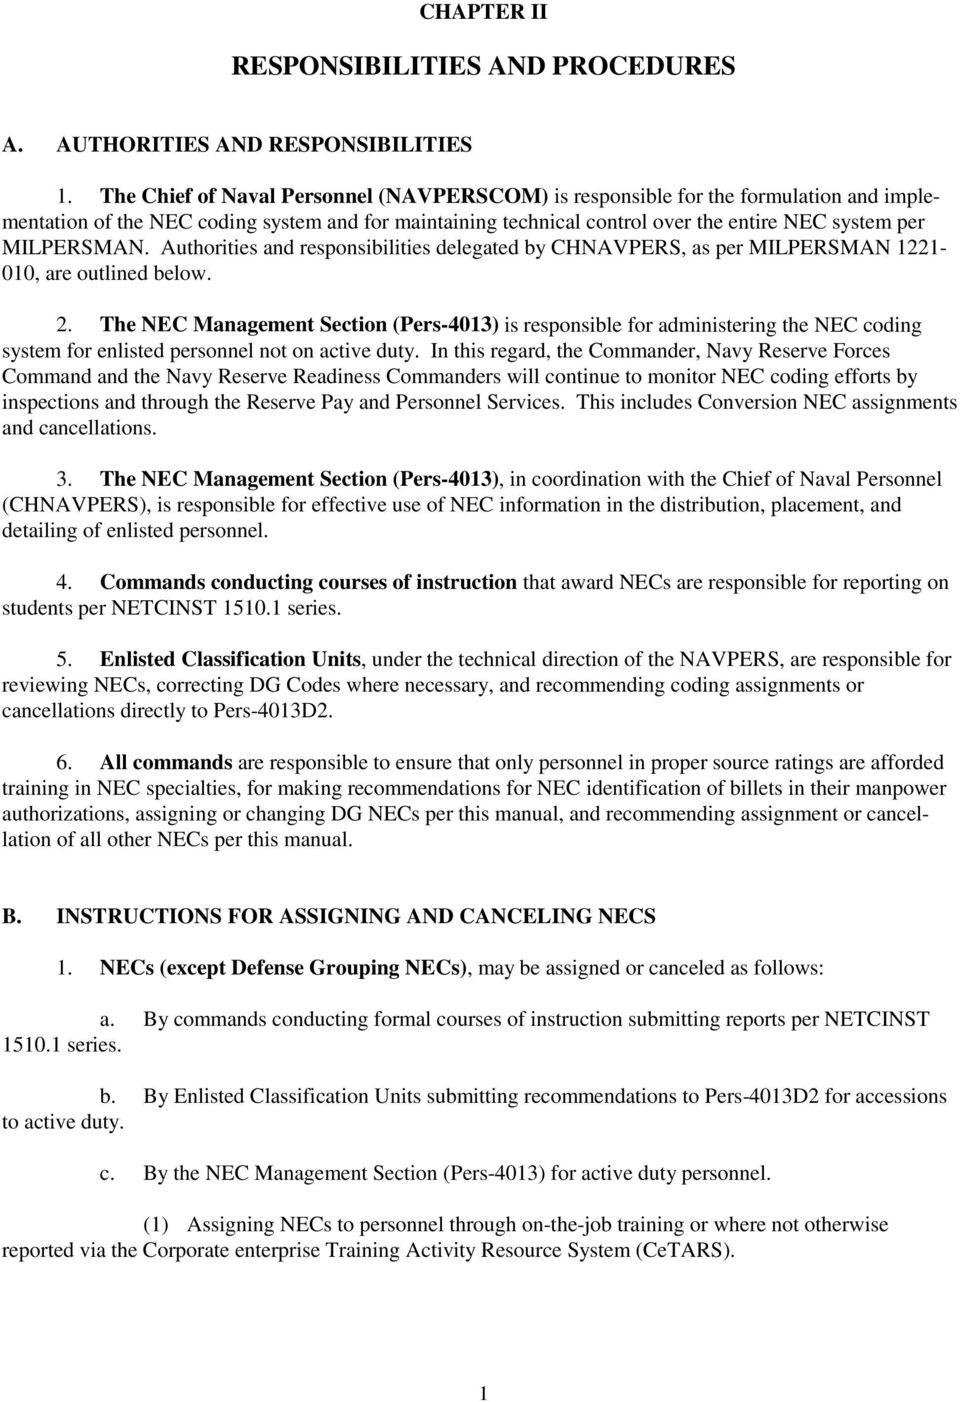 manual of navy enlisted manpower and personnel classifications and rh docplayer net navy nec manual vol 2 navy nec manual 2011